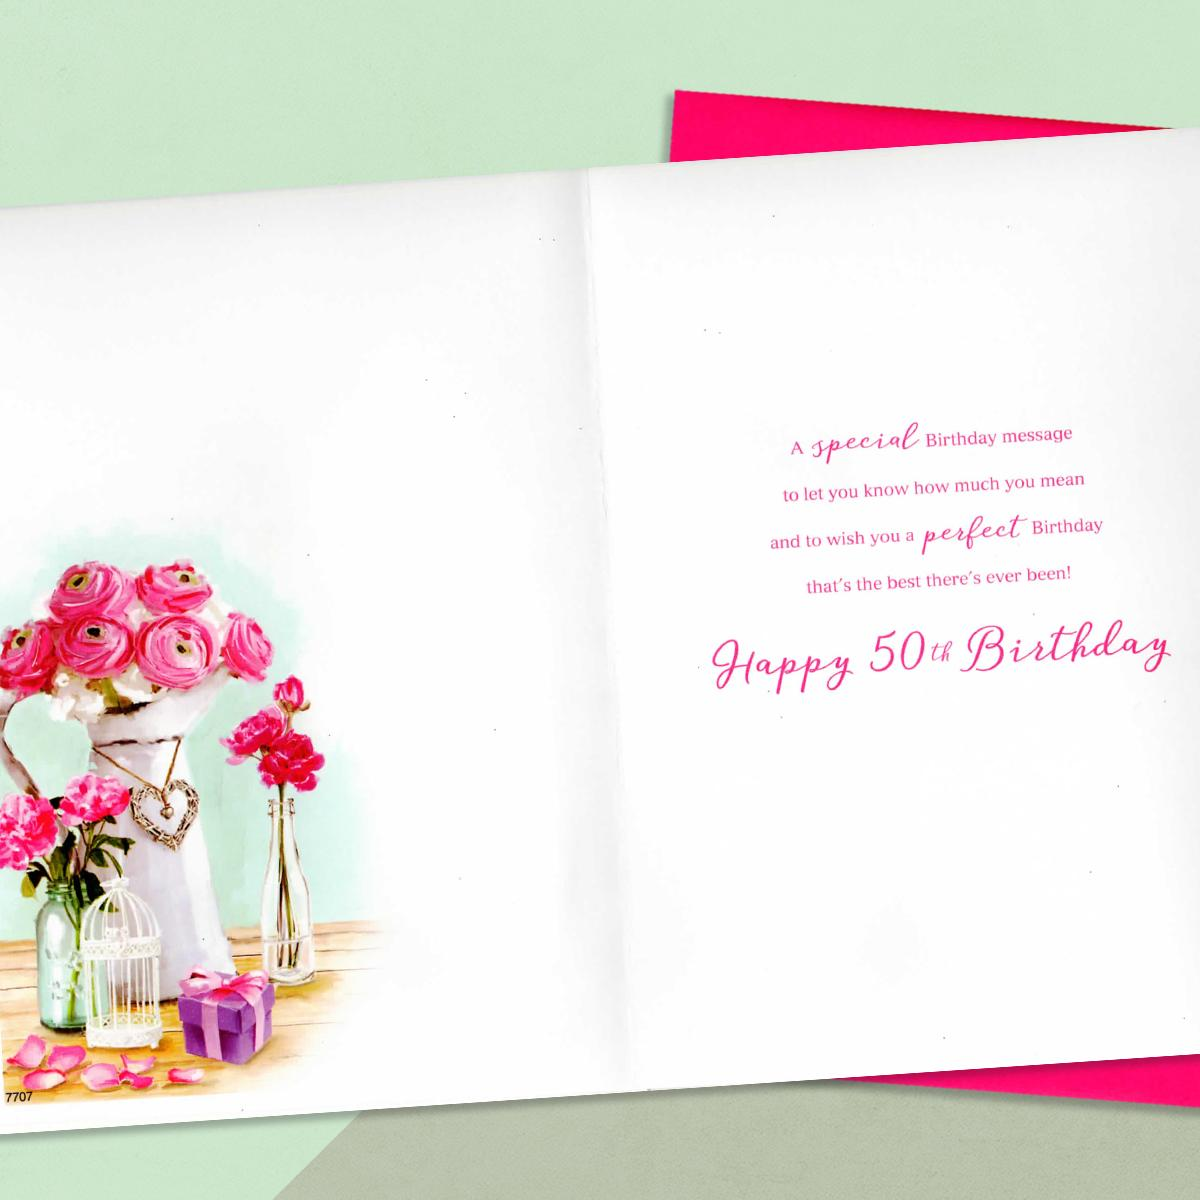 Daughter Age 50 Birthday Card Alongside Its Magenta Envelope